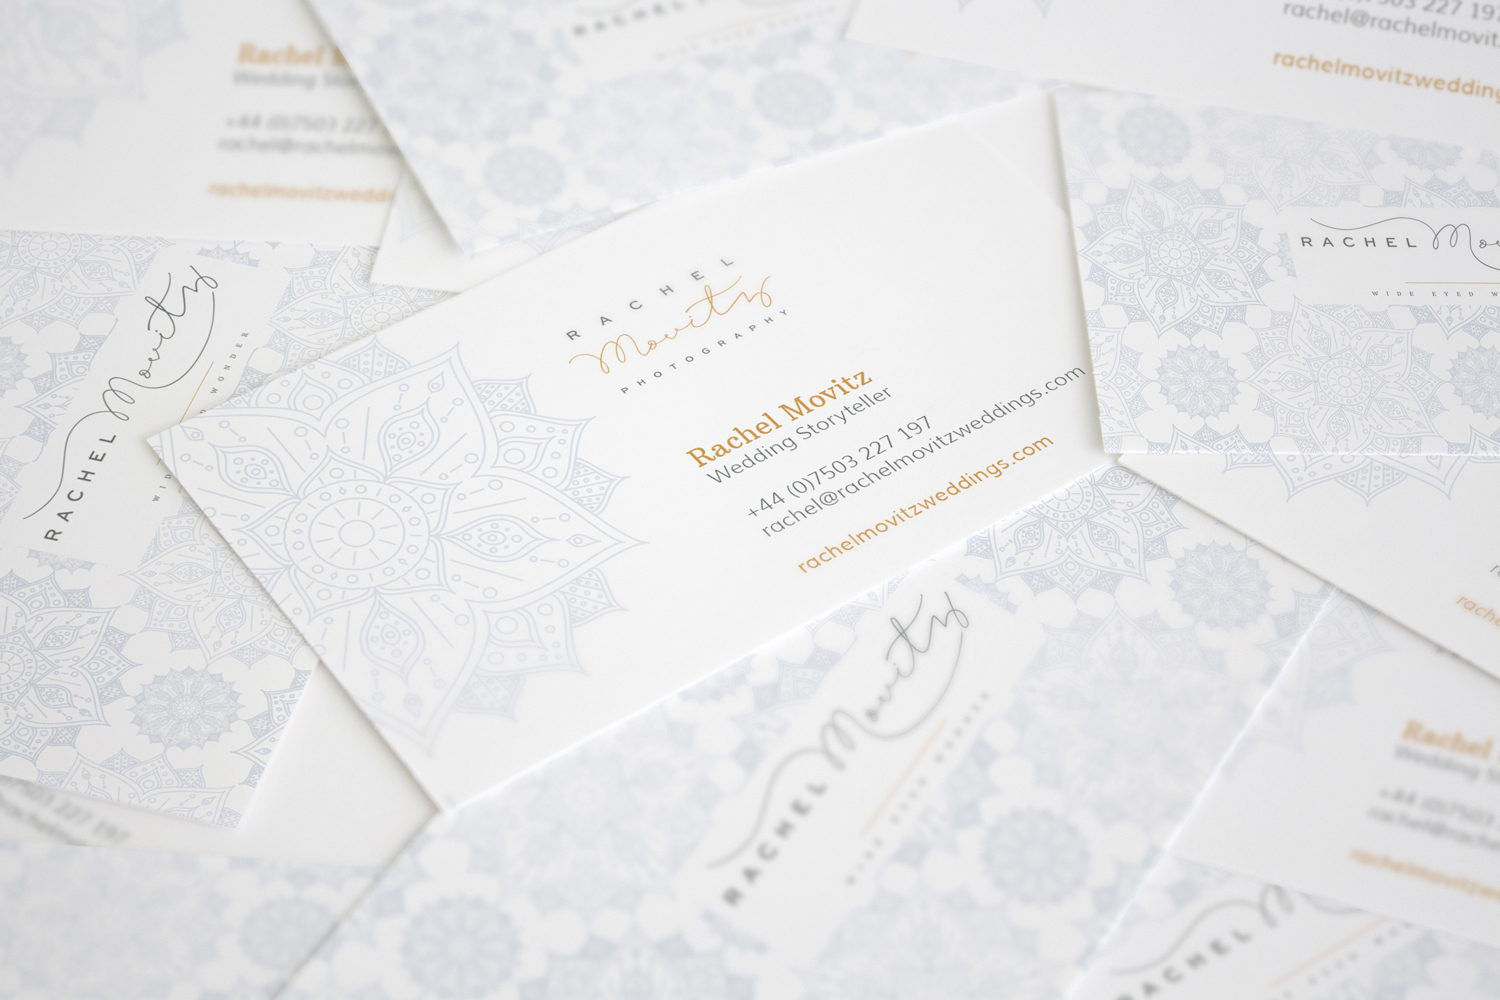 Brand identity and logo design for Rachel Movitz, wedding photographer Oxforshire, brand styling by Ditto Creative